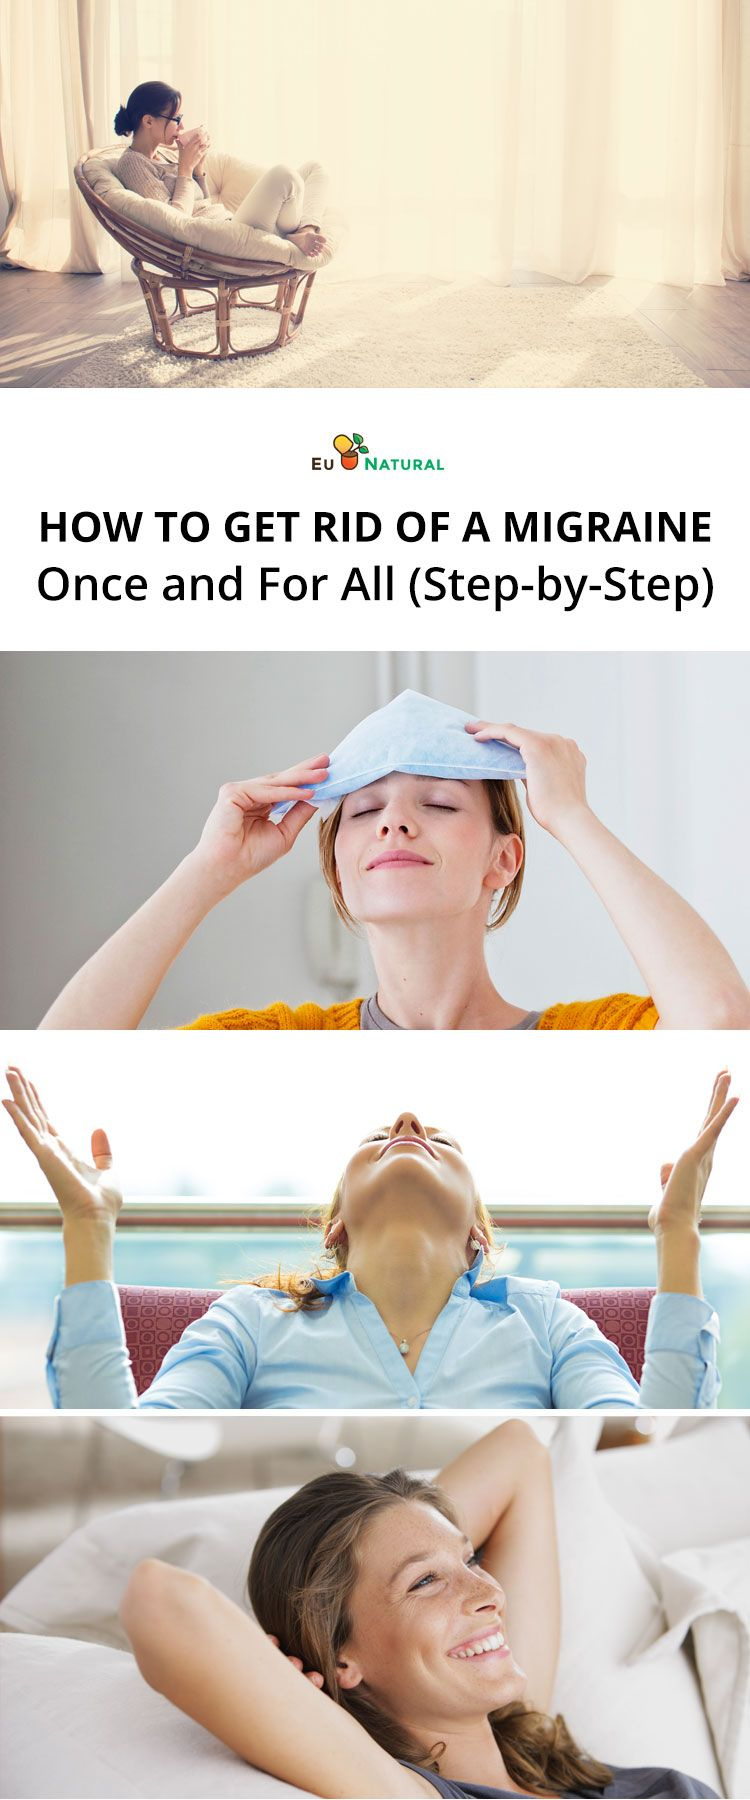 How to get rid of a migraine once and for all stepby